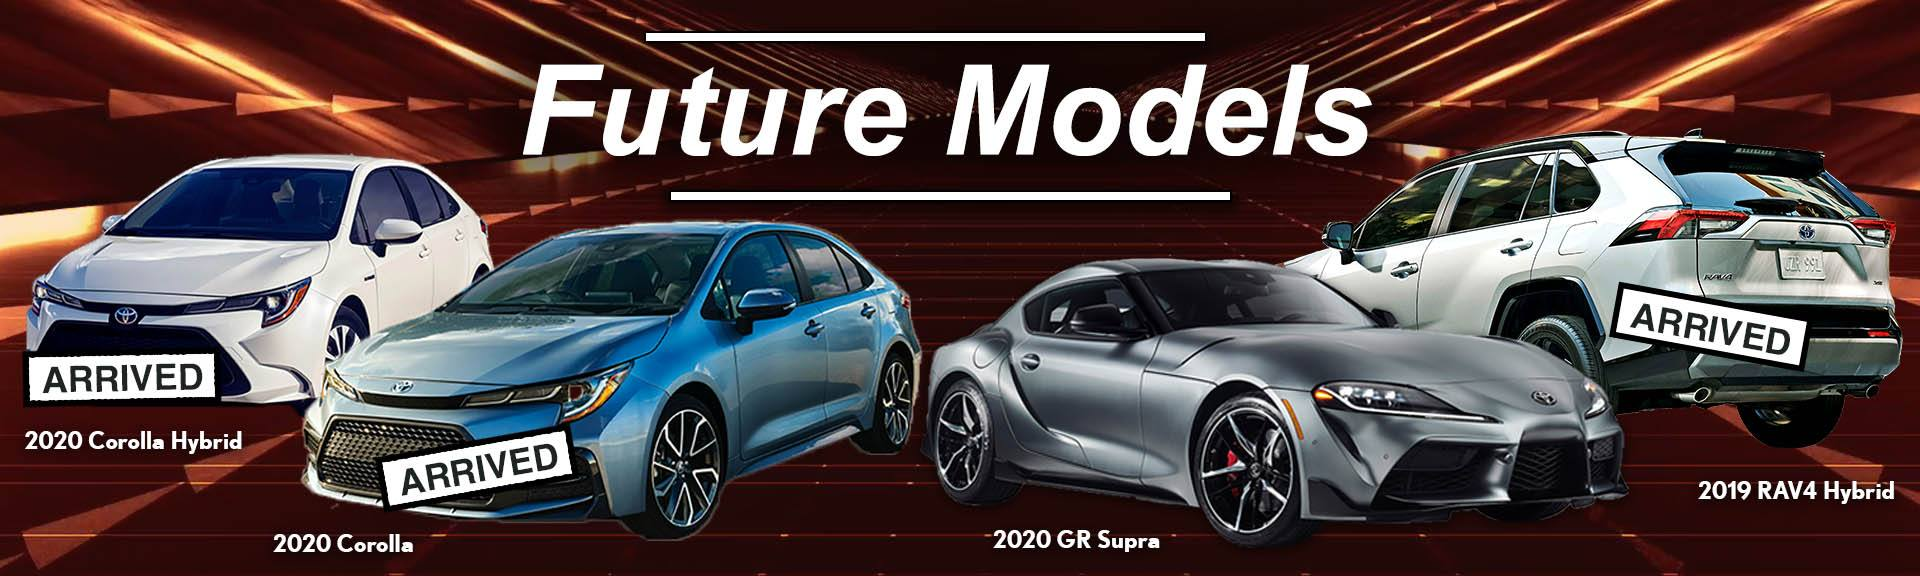 Toyota Future Models Banner Ad